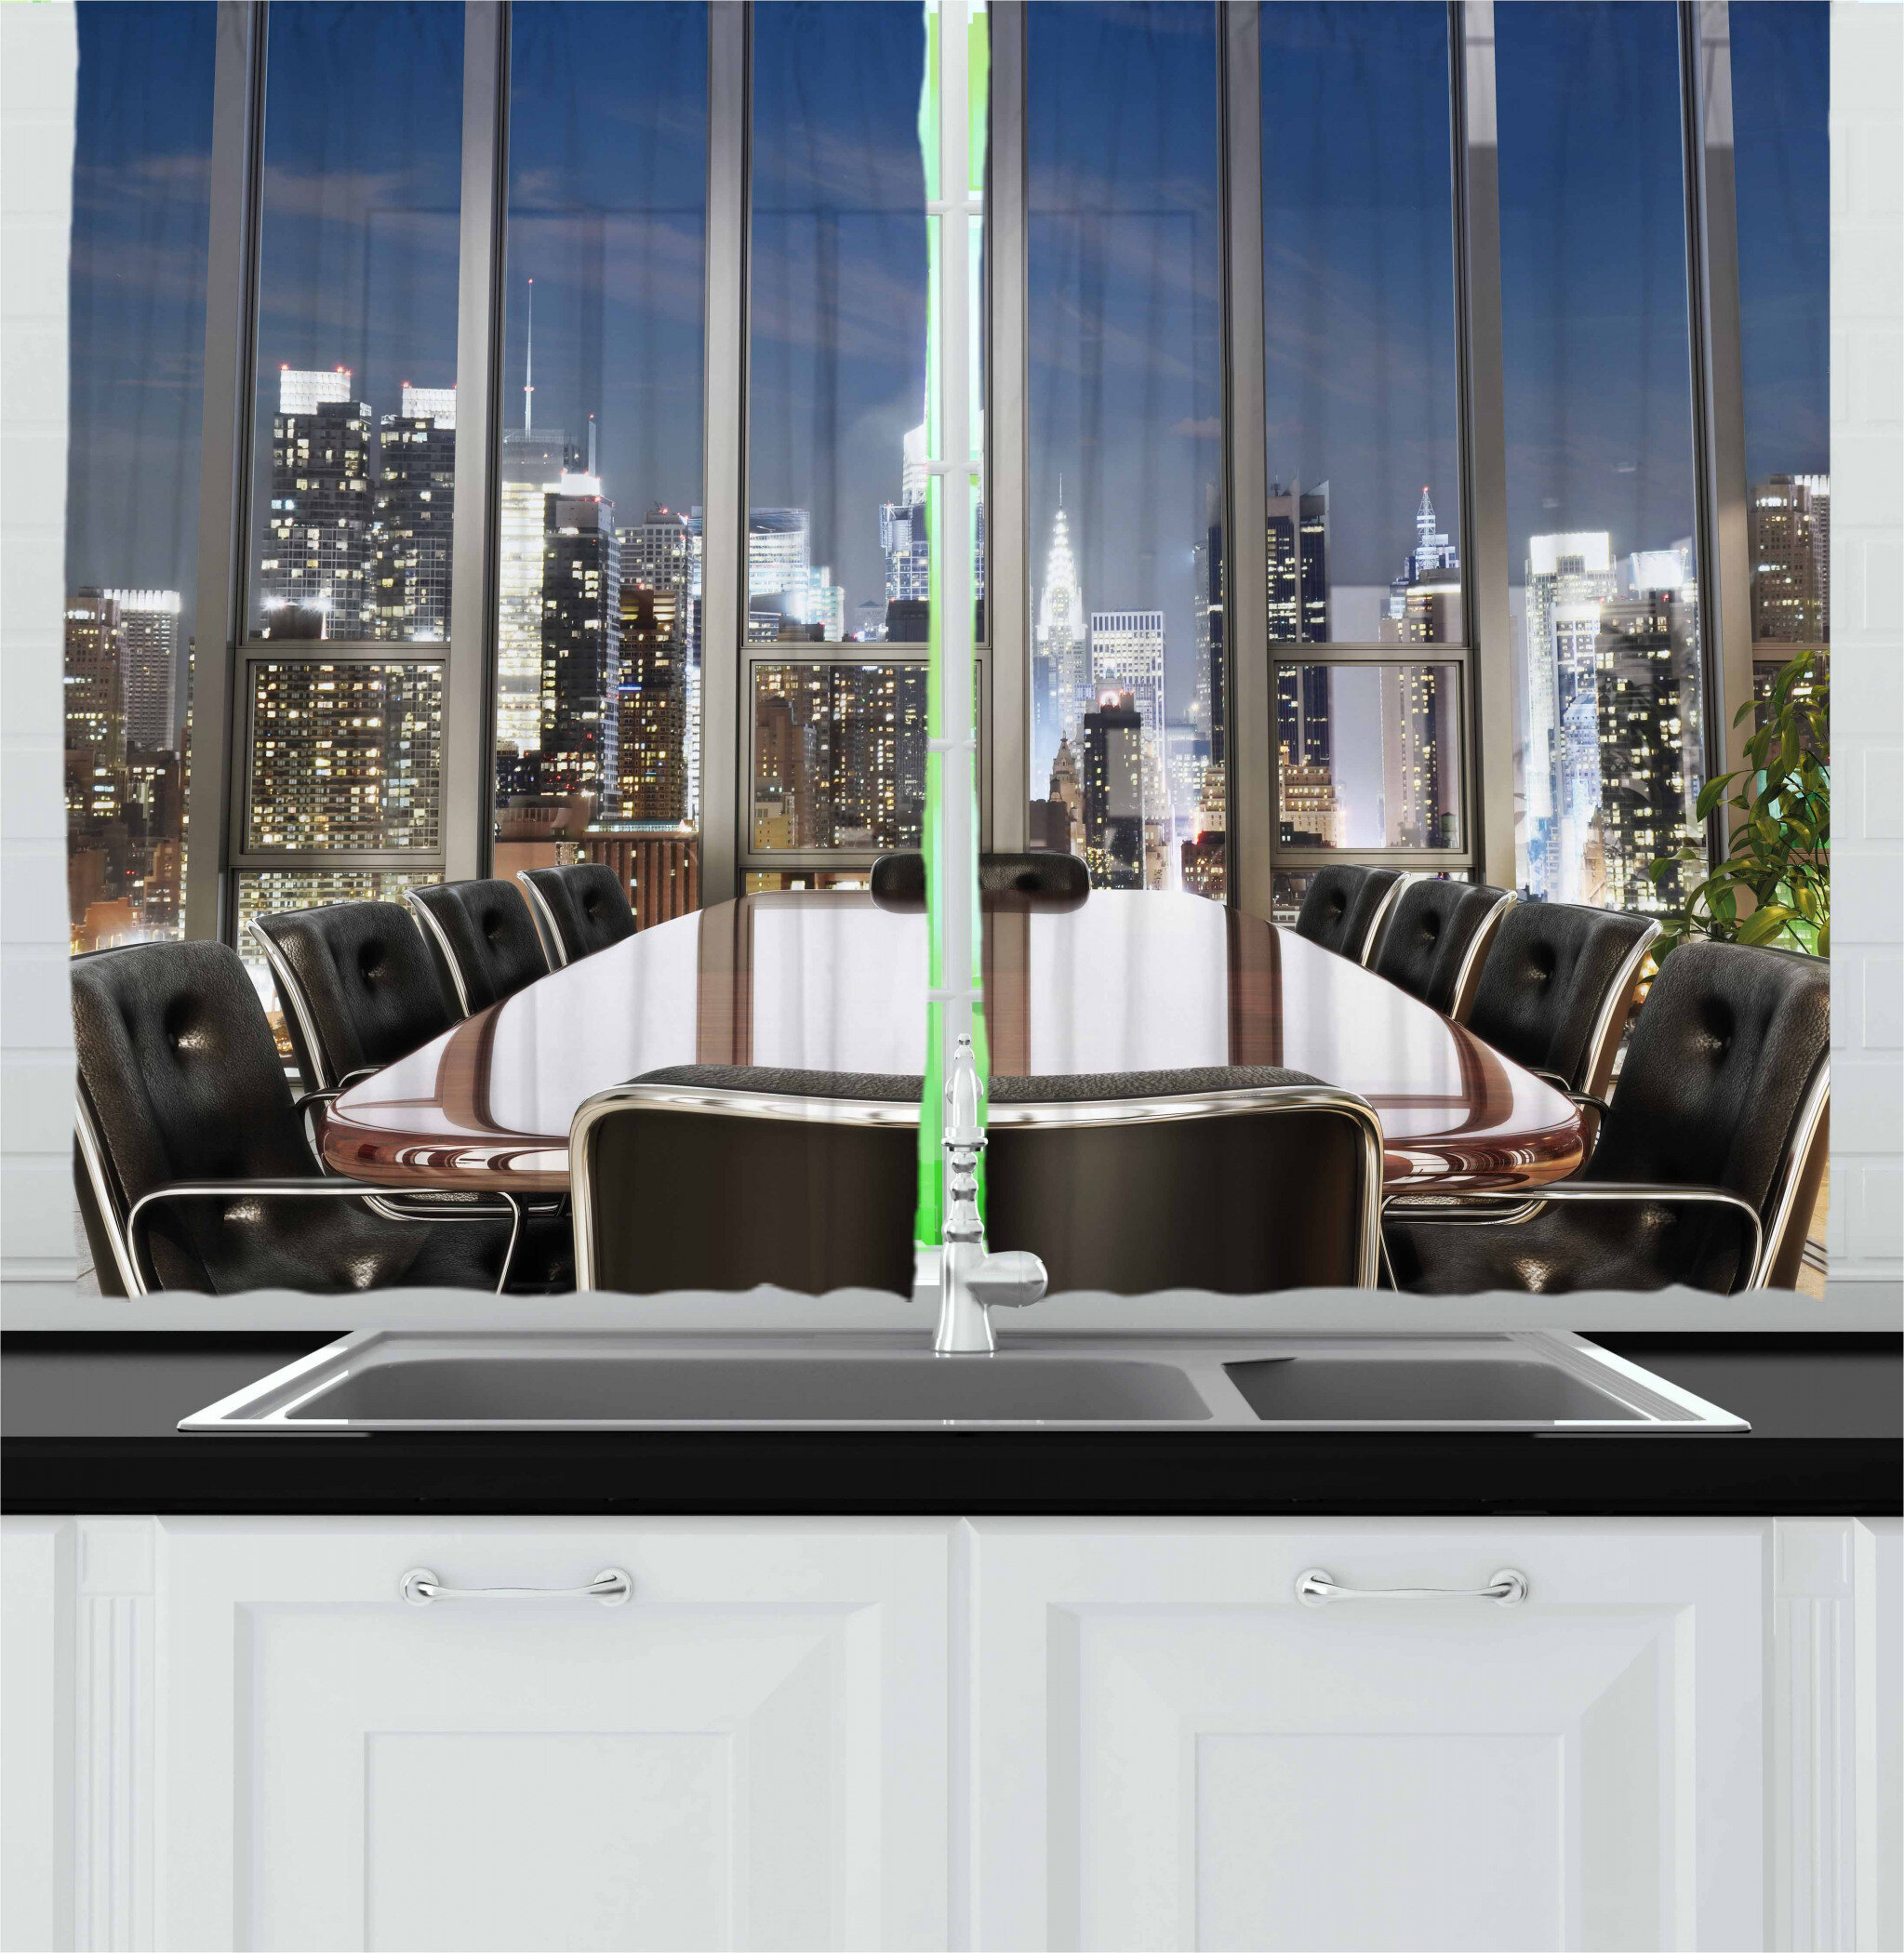 49 Piece Business Office Conference Room Table Chairs City View at Dusk  Realistic Photo Kitchen Curtain